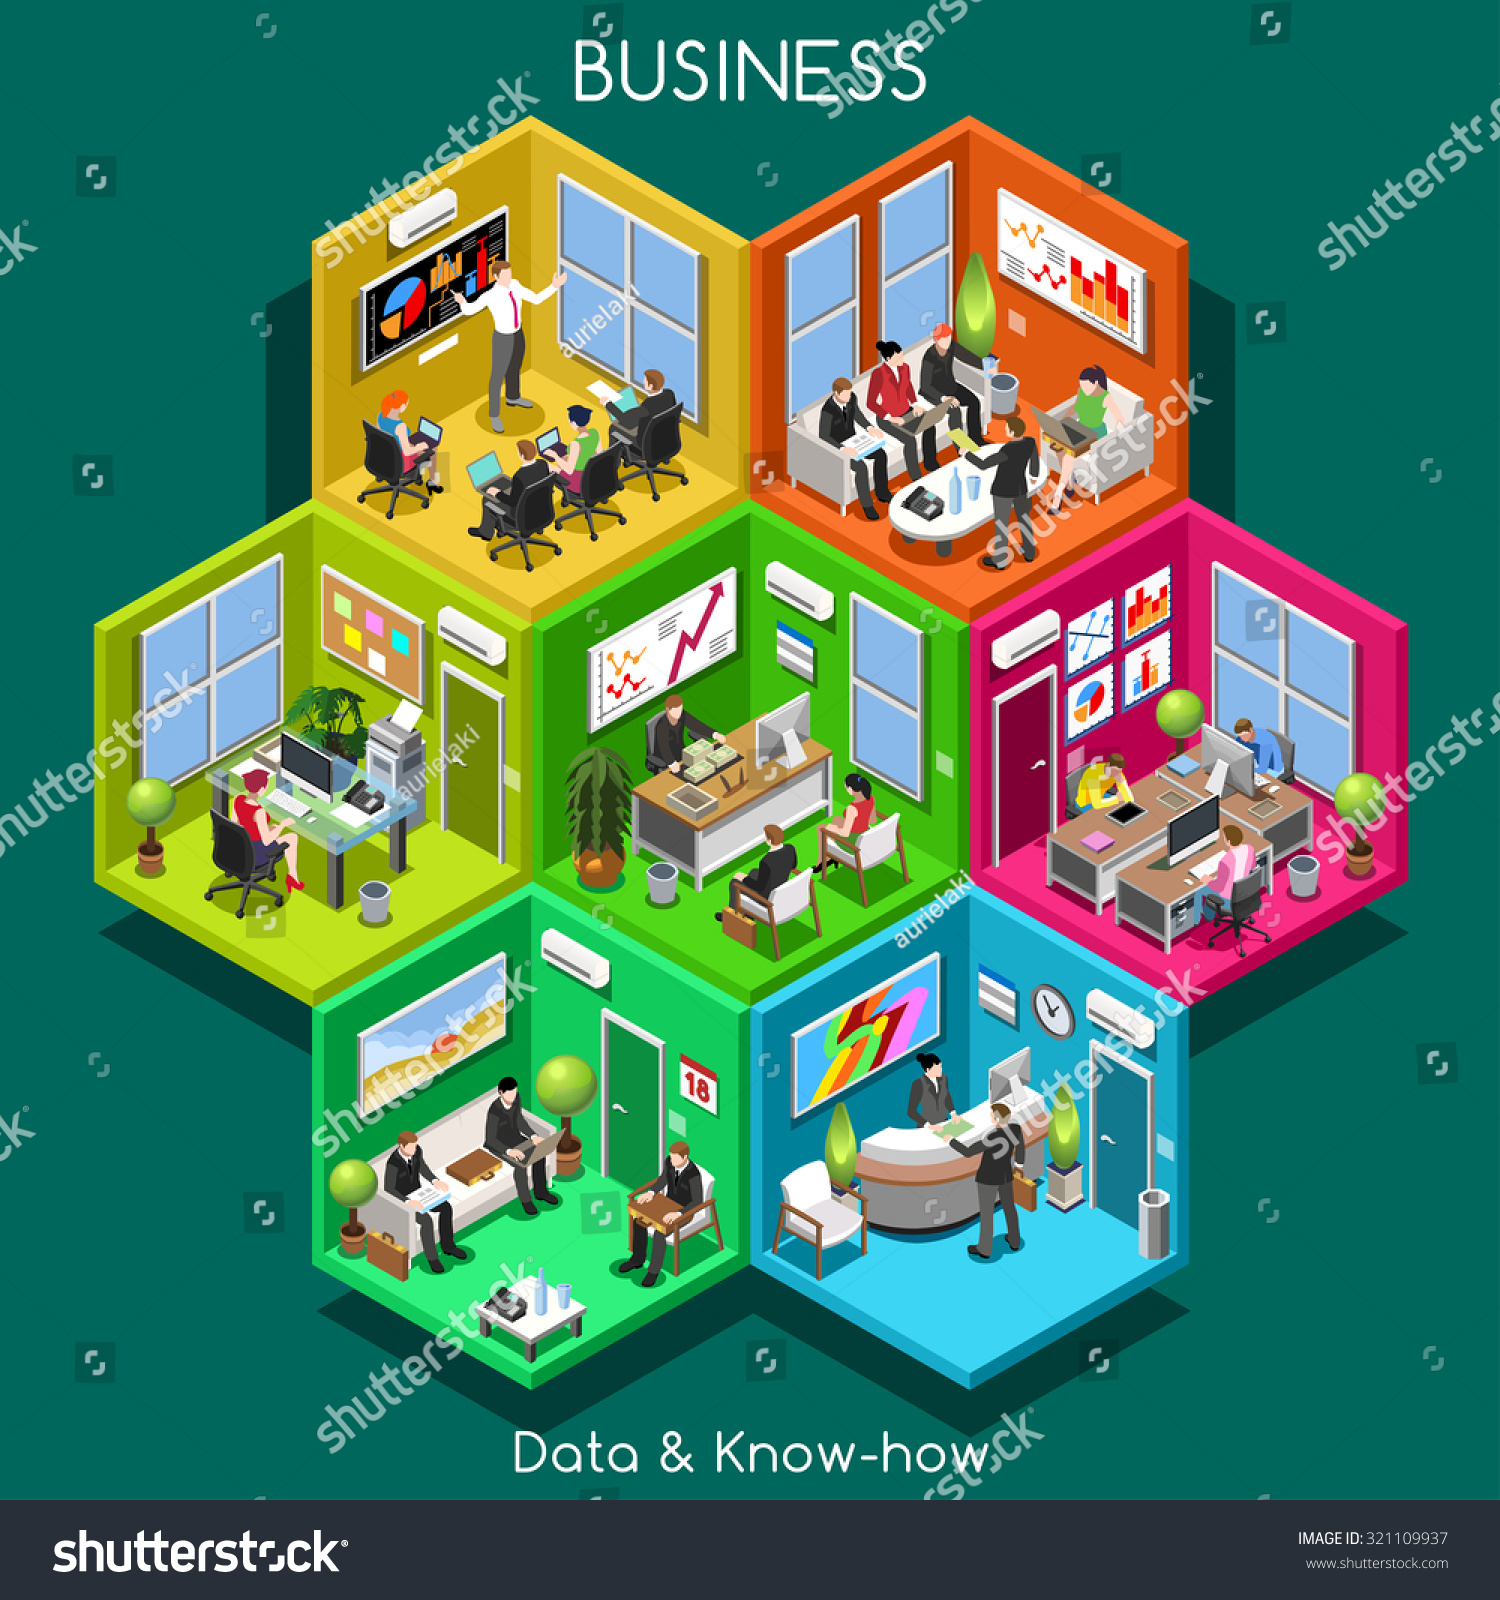 abstract business office and departments interacting people isometric realistic poses palette. Black Bedroom Furniture Sets. Home Design Ideas